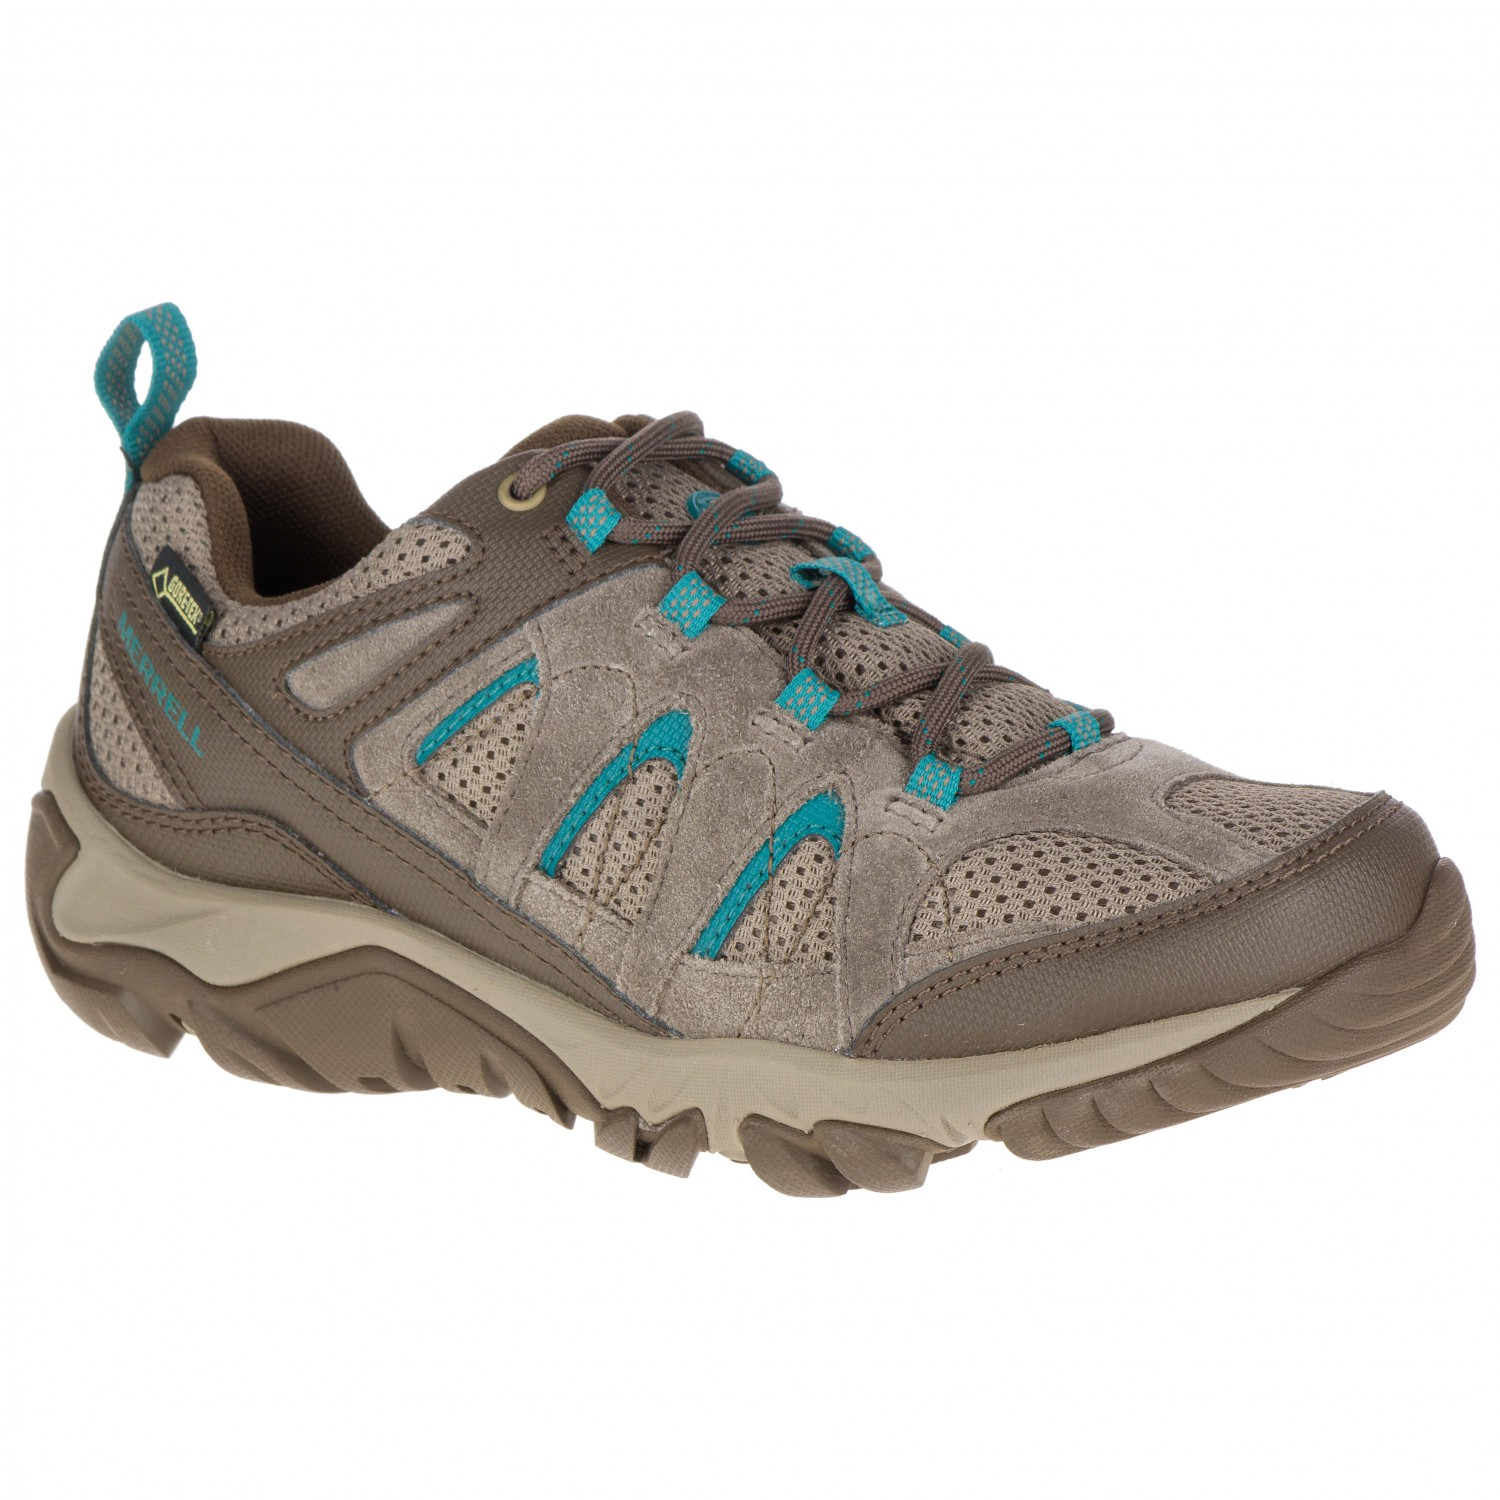 Merrell Outmost Vent GTX - Multisport